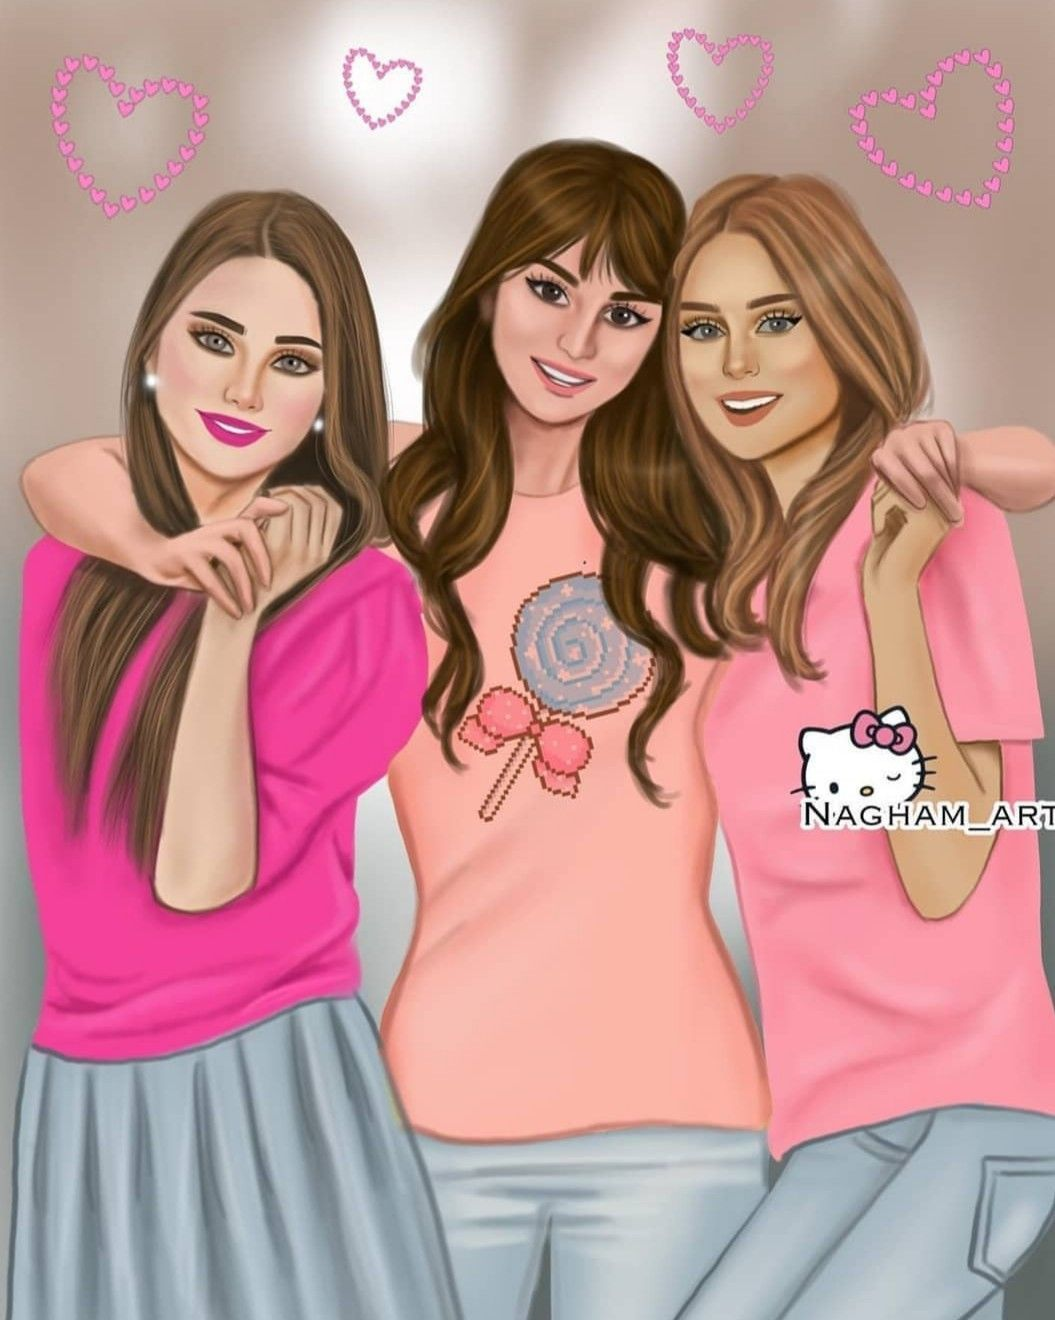 3 Best Friends Drawing : friends, drawing, Three, Friends, Girls, Wallpapers, Wallpaper